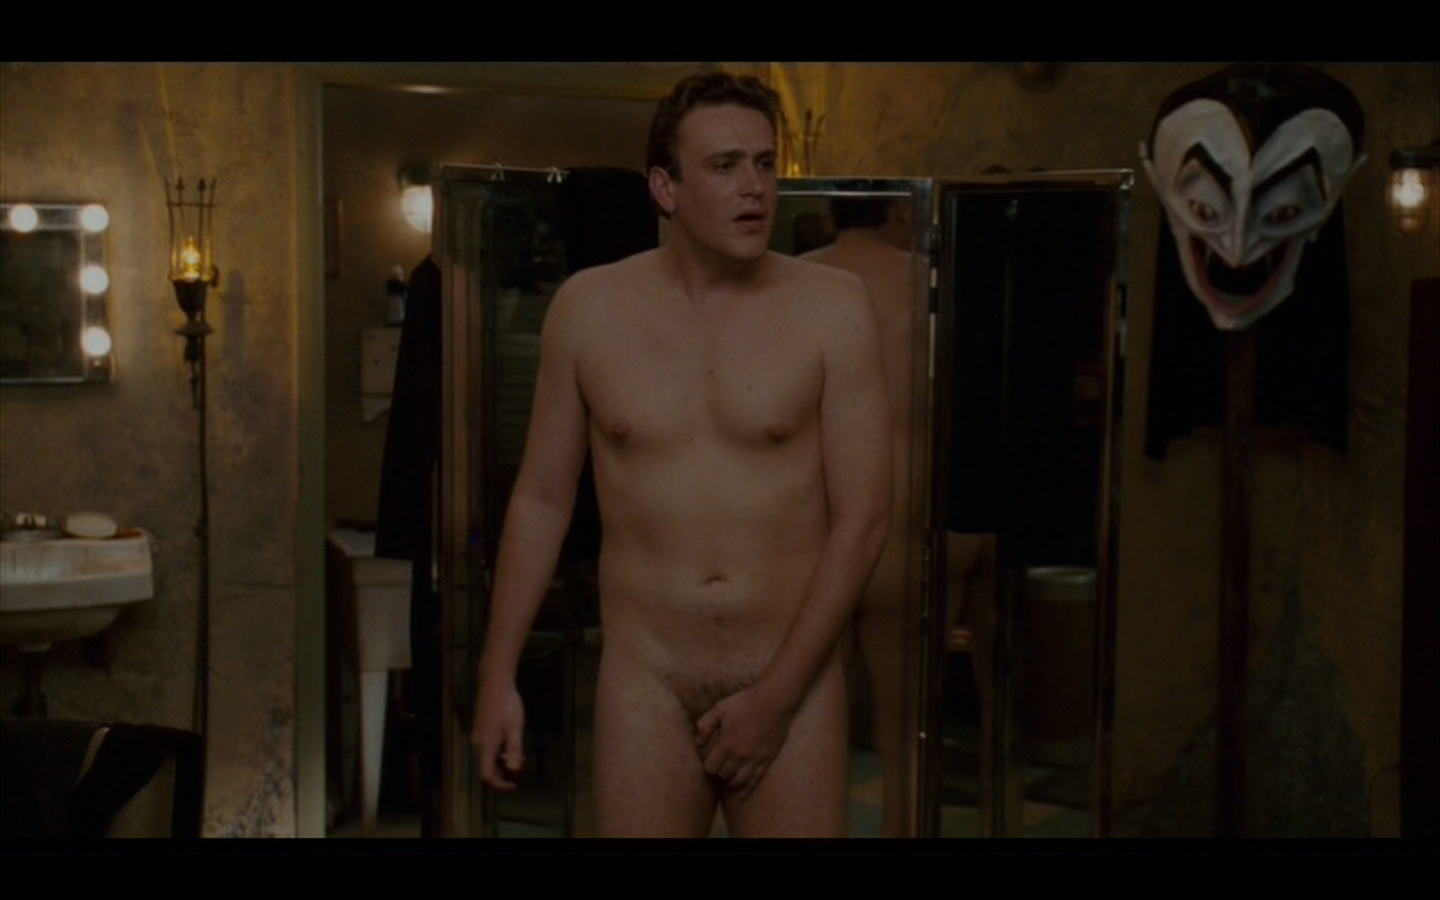 Actor who stripped down: Jason Segel Why they're fully nude: The mistaken  belief that his girlfriend is in the mood for love. Men have been dumped  plenty of ...